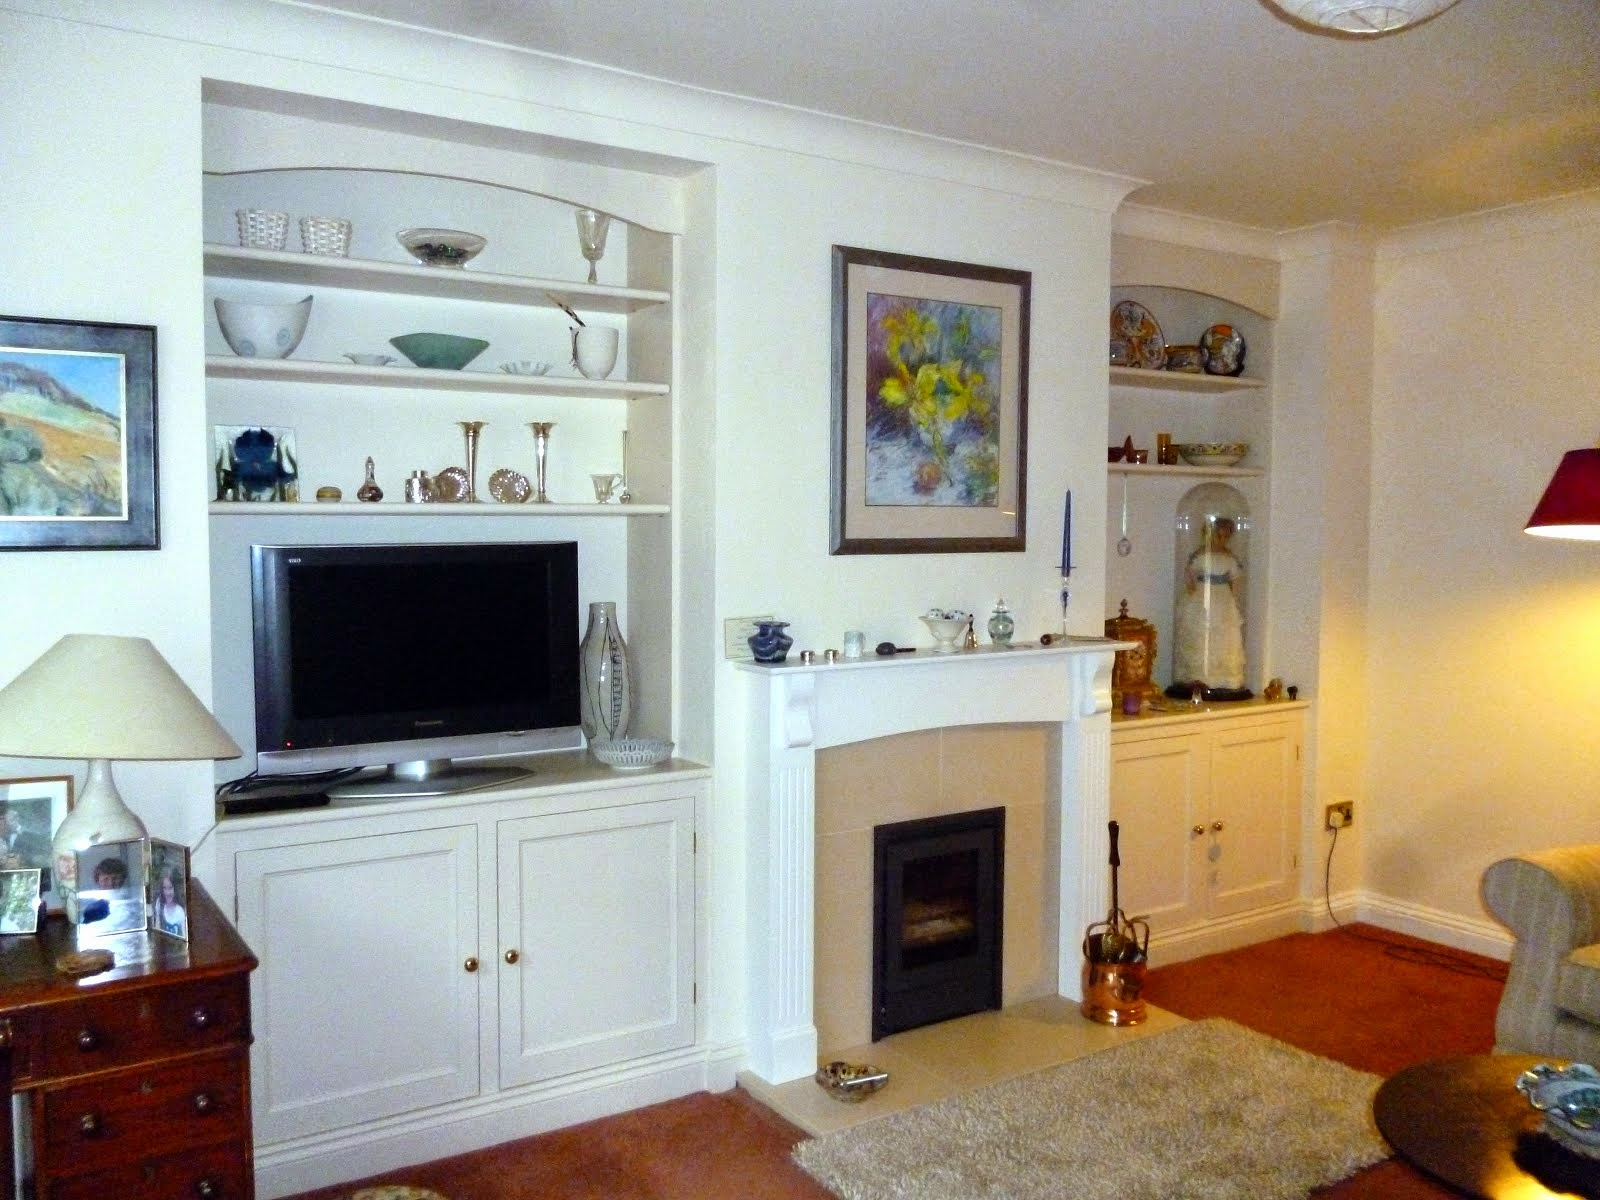 sitting room cupboards and shelves